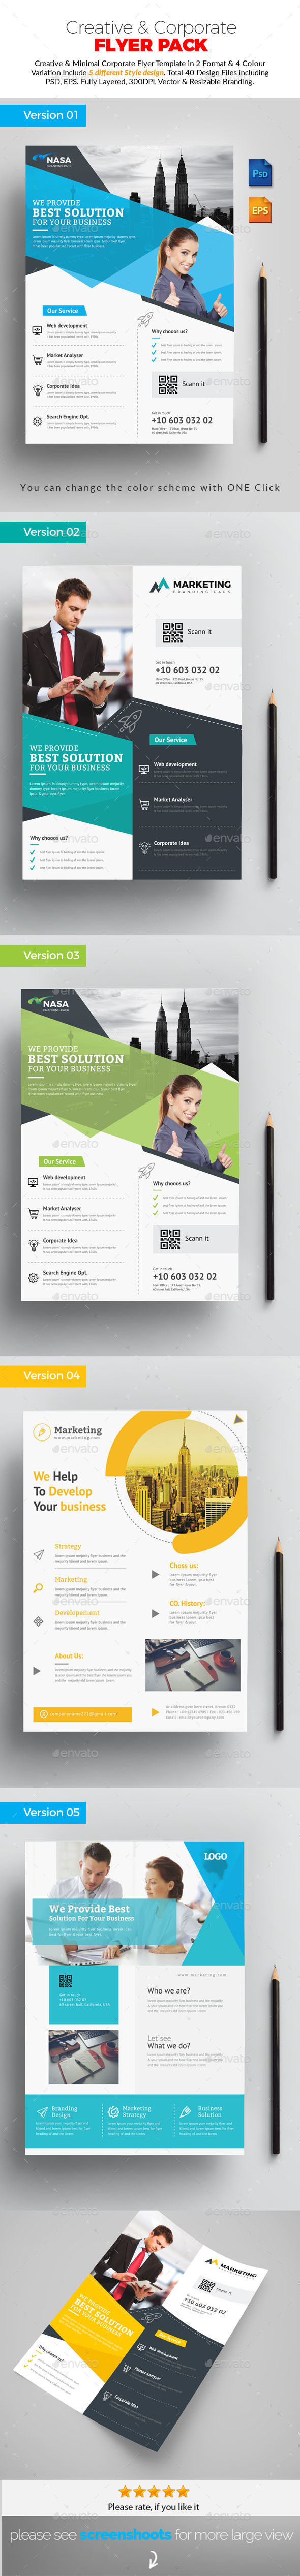 GraphicRiver Flyer Pack Template 20825254